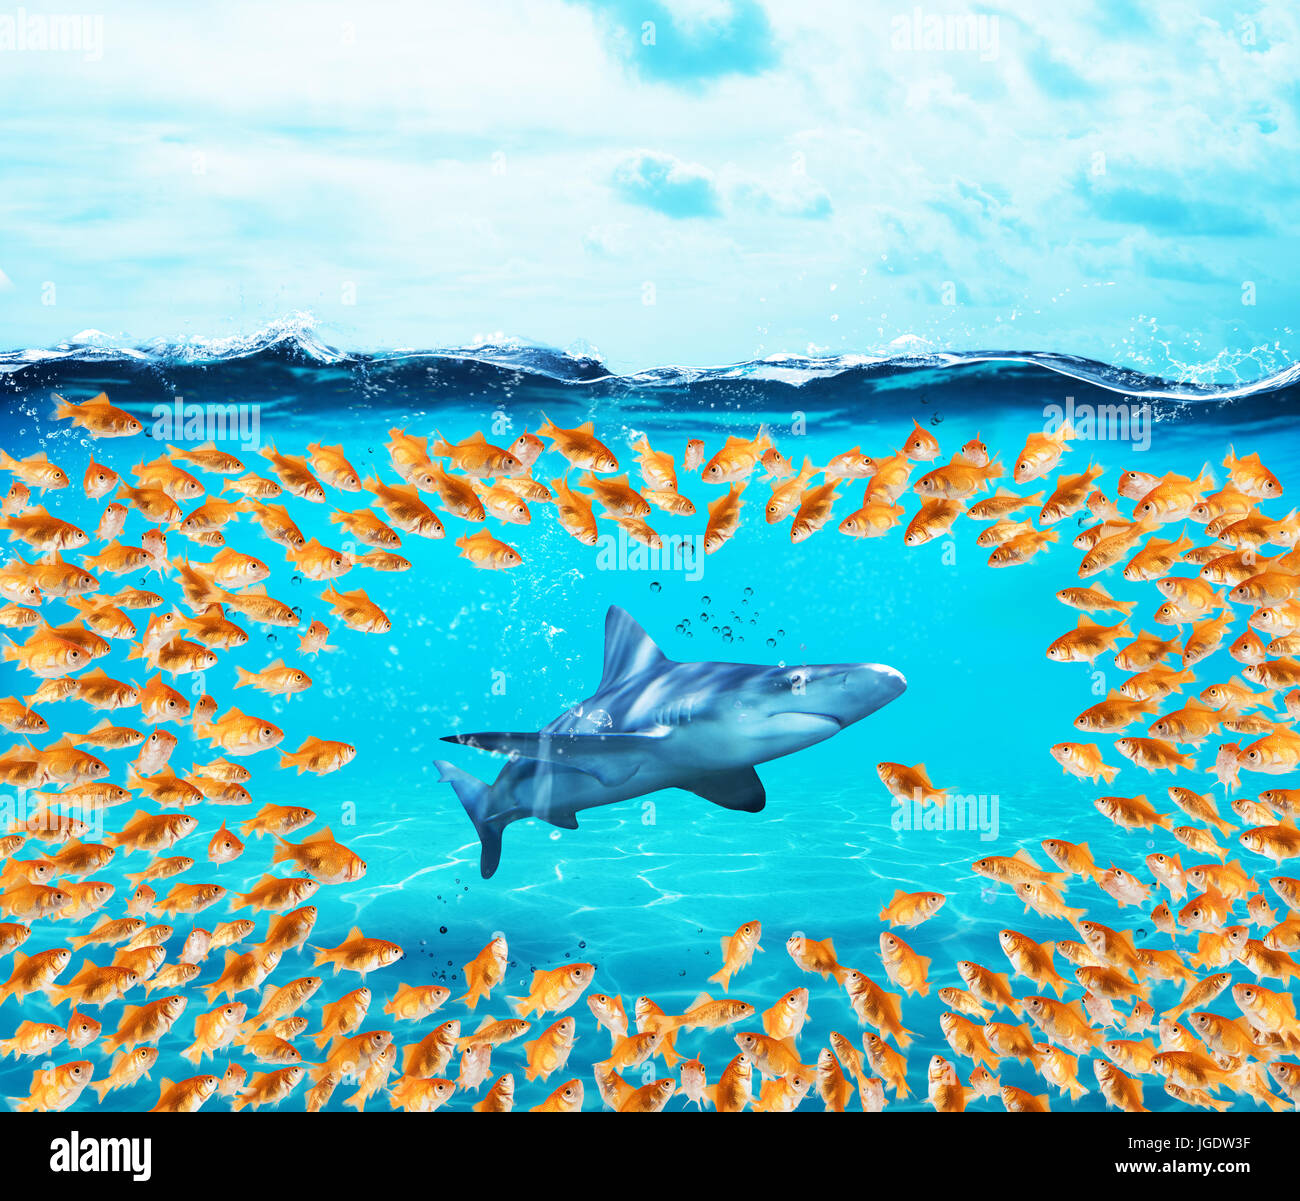 Goldfishes group surround the shark. Concept of unity is strenght,teamwork and partnership - Stock Image